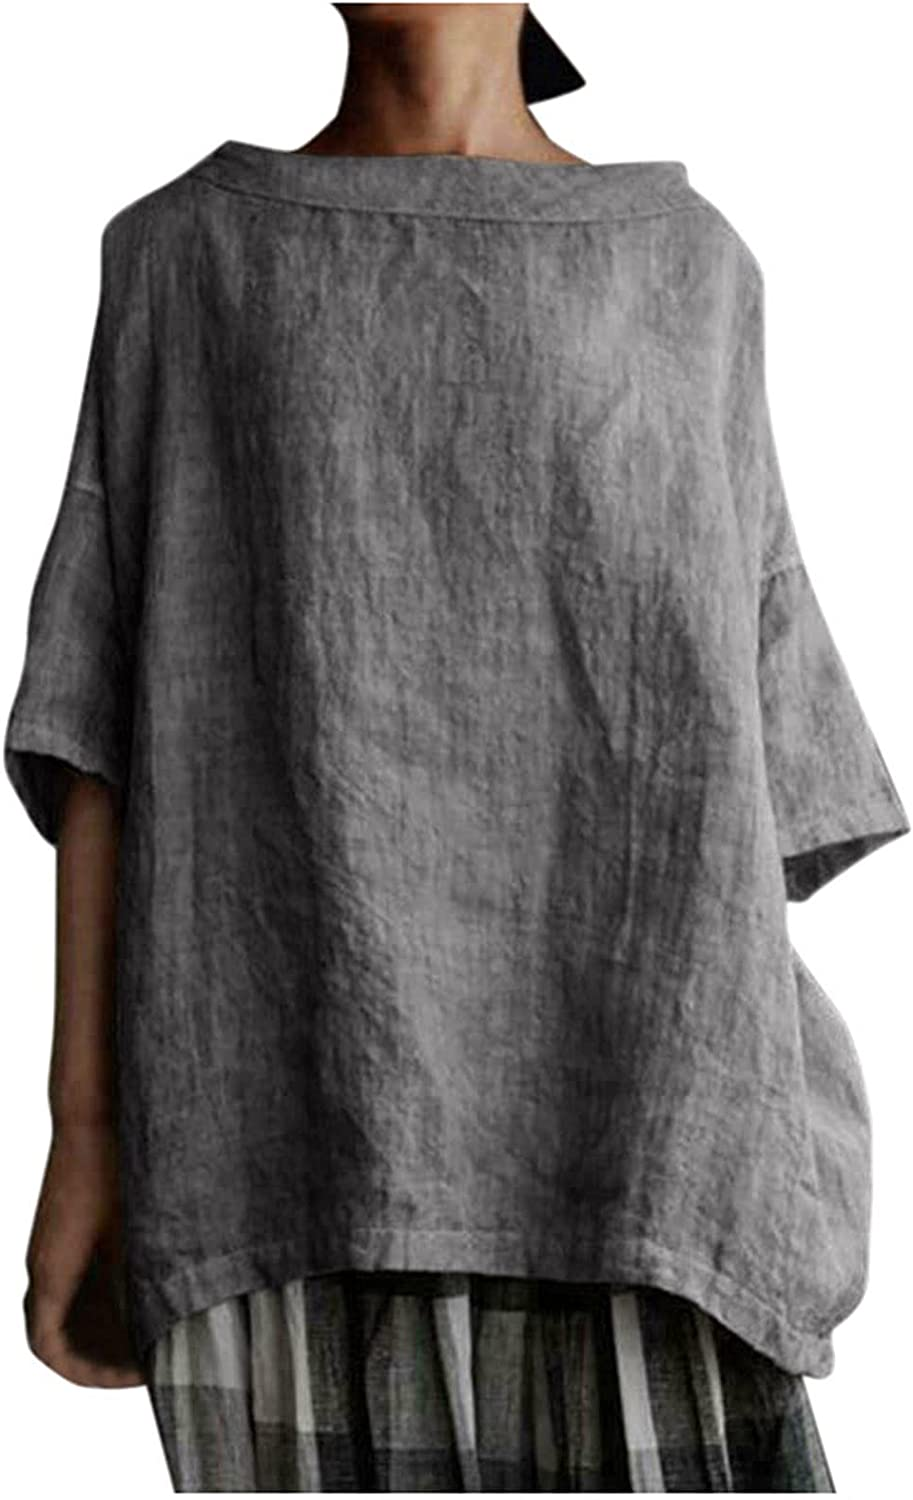 Women's Plus Size 3/4 Sleeve Tees Cotton Linen Tops Loose Solid Color Casual Shirt Crewneck Comfortable Tunic Blouses